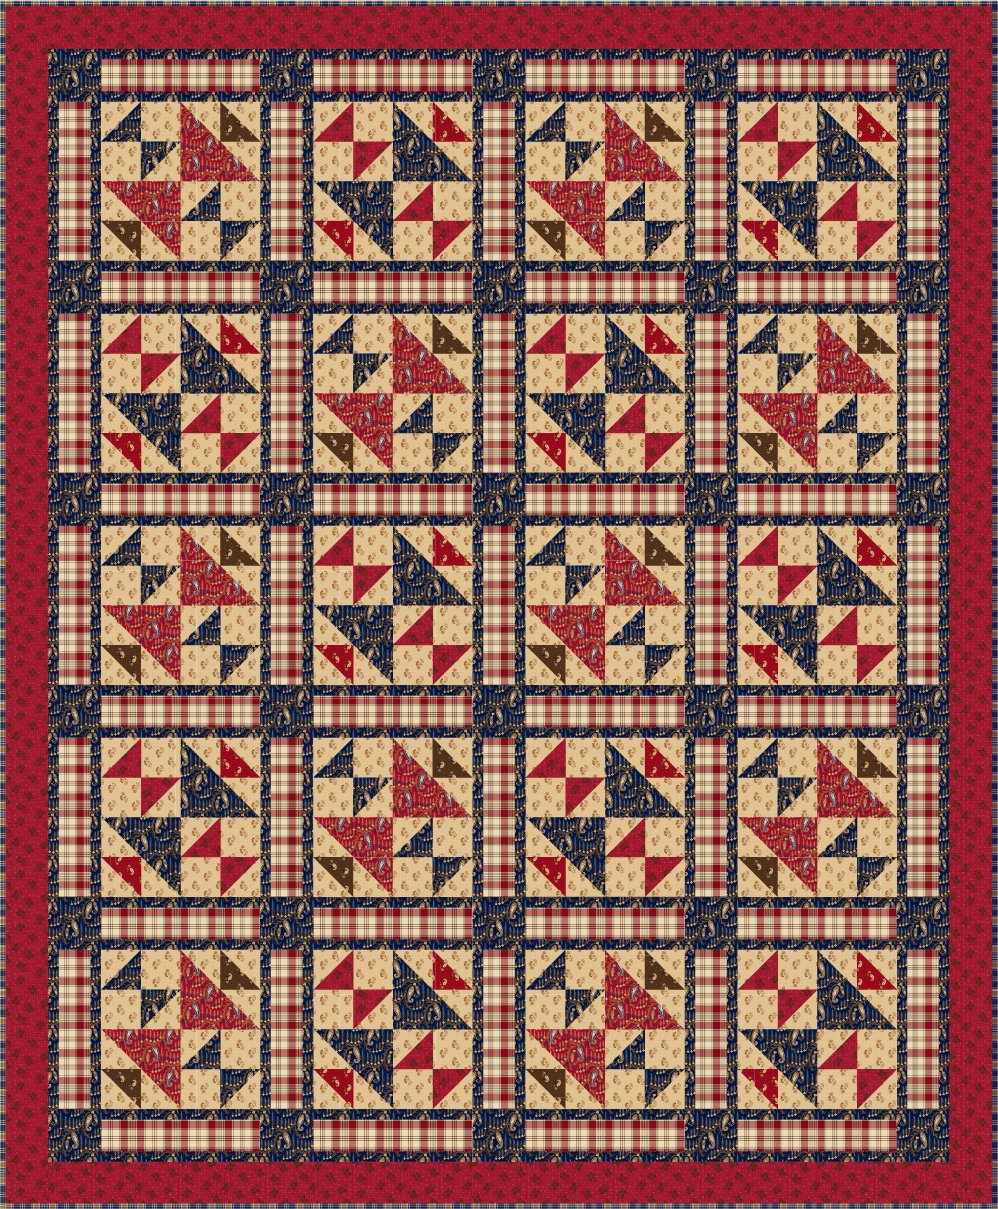 Whispers of Wisdom Pieced Quilt Kit